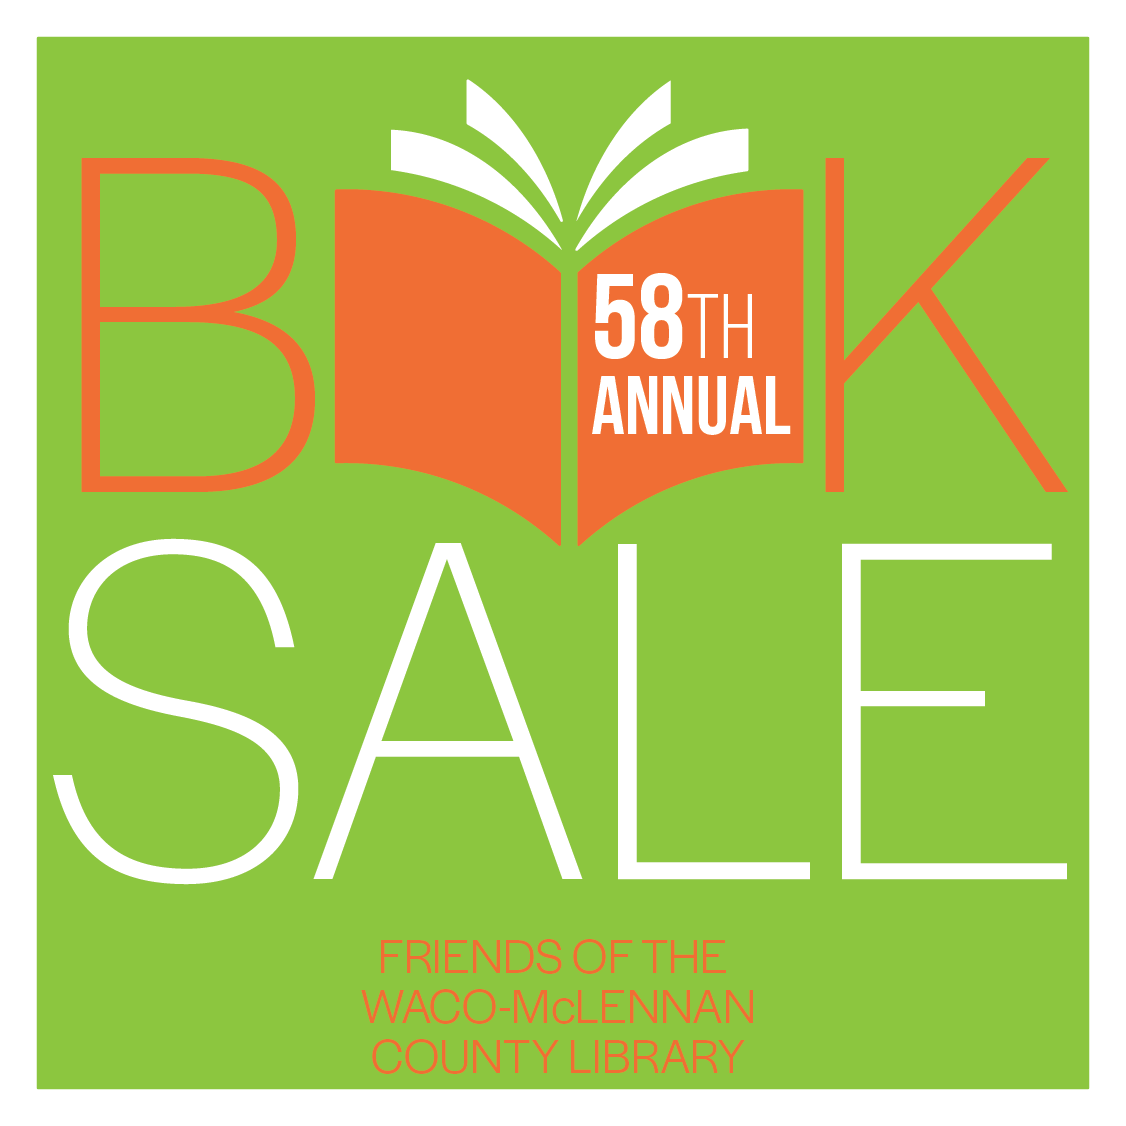 Friends of the Waco-McLennan County Library Book Sale